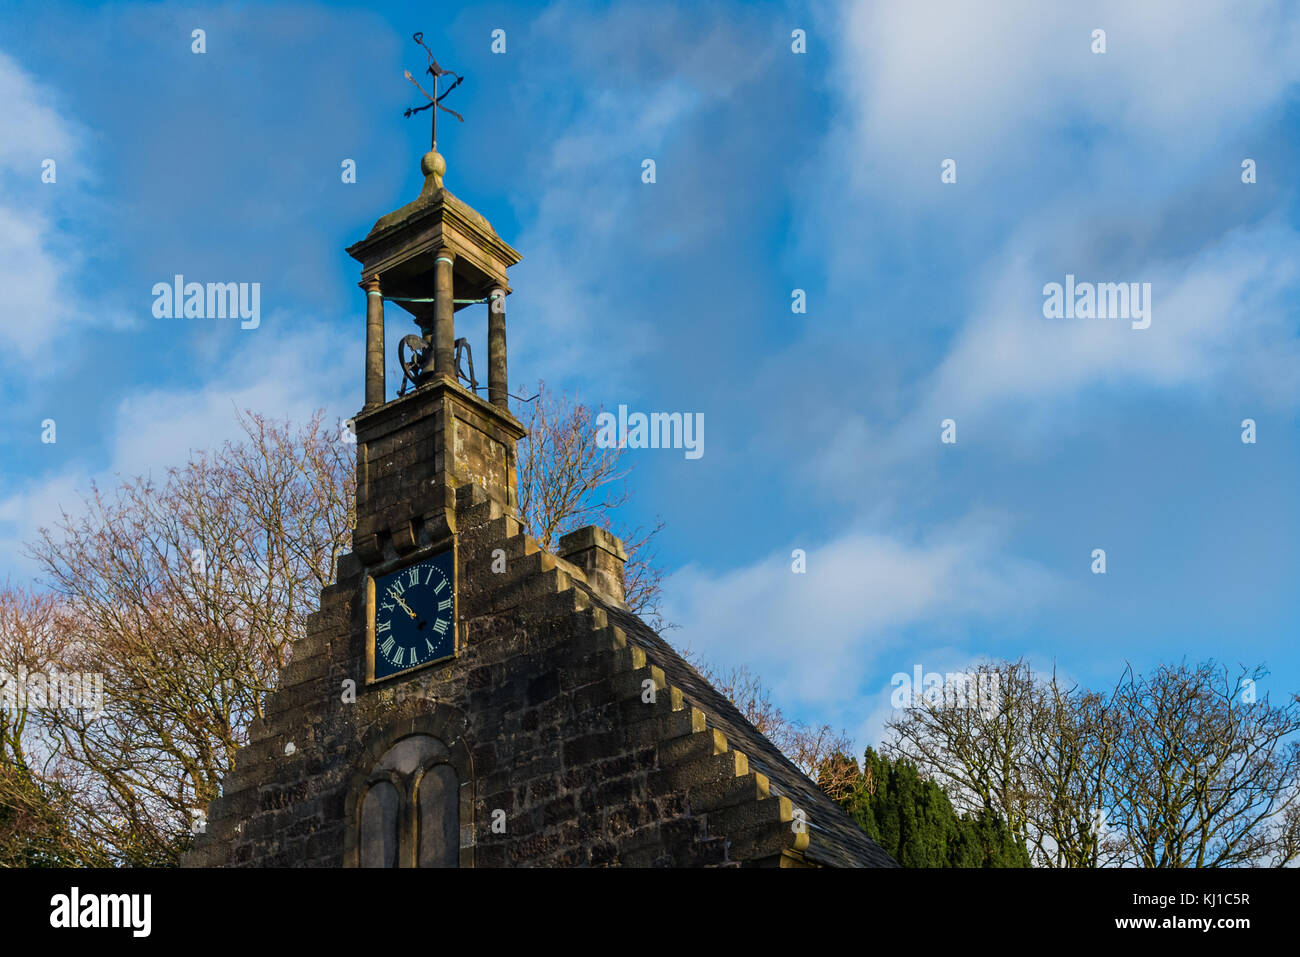 Lochwinnoch,Scotland,UK-November 18,2017: The early 18th-century St John's Church and its Weather vane with - Stock Image